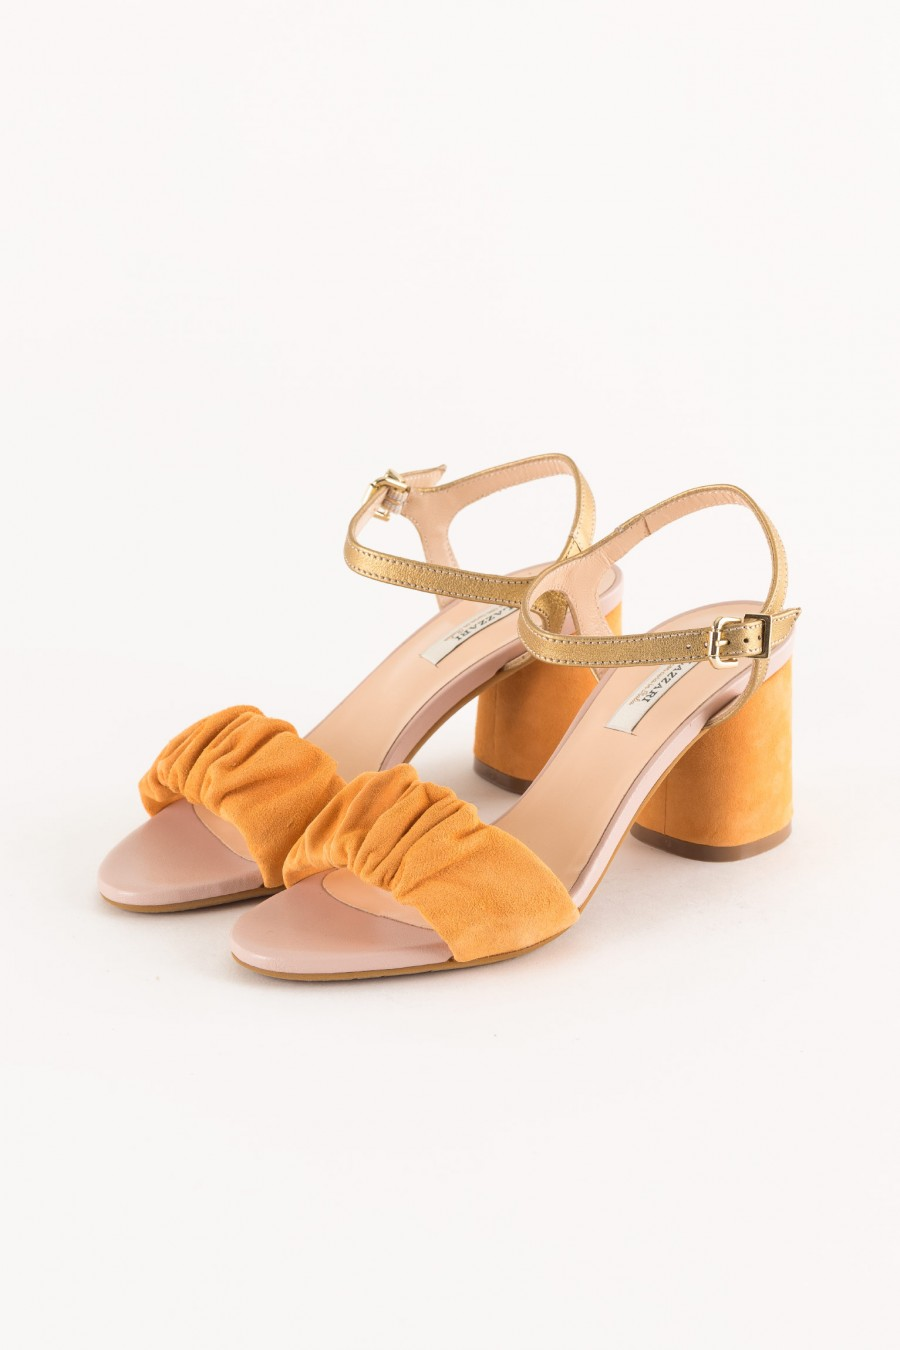 summer shoe with rounded heel